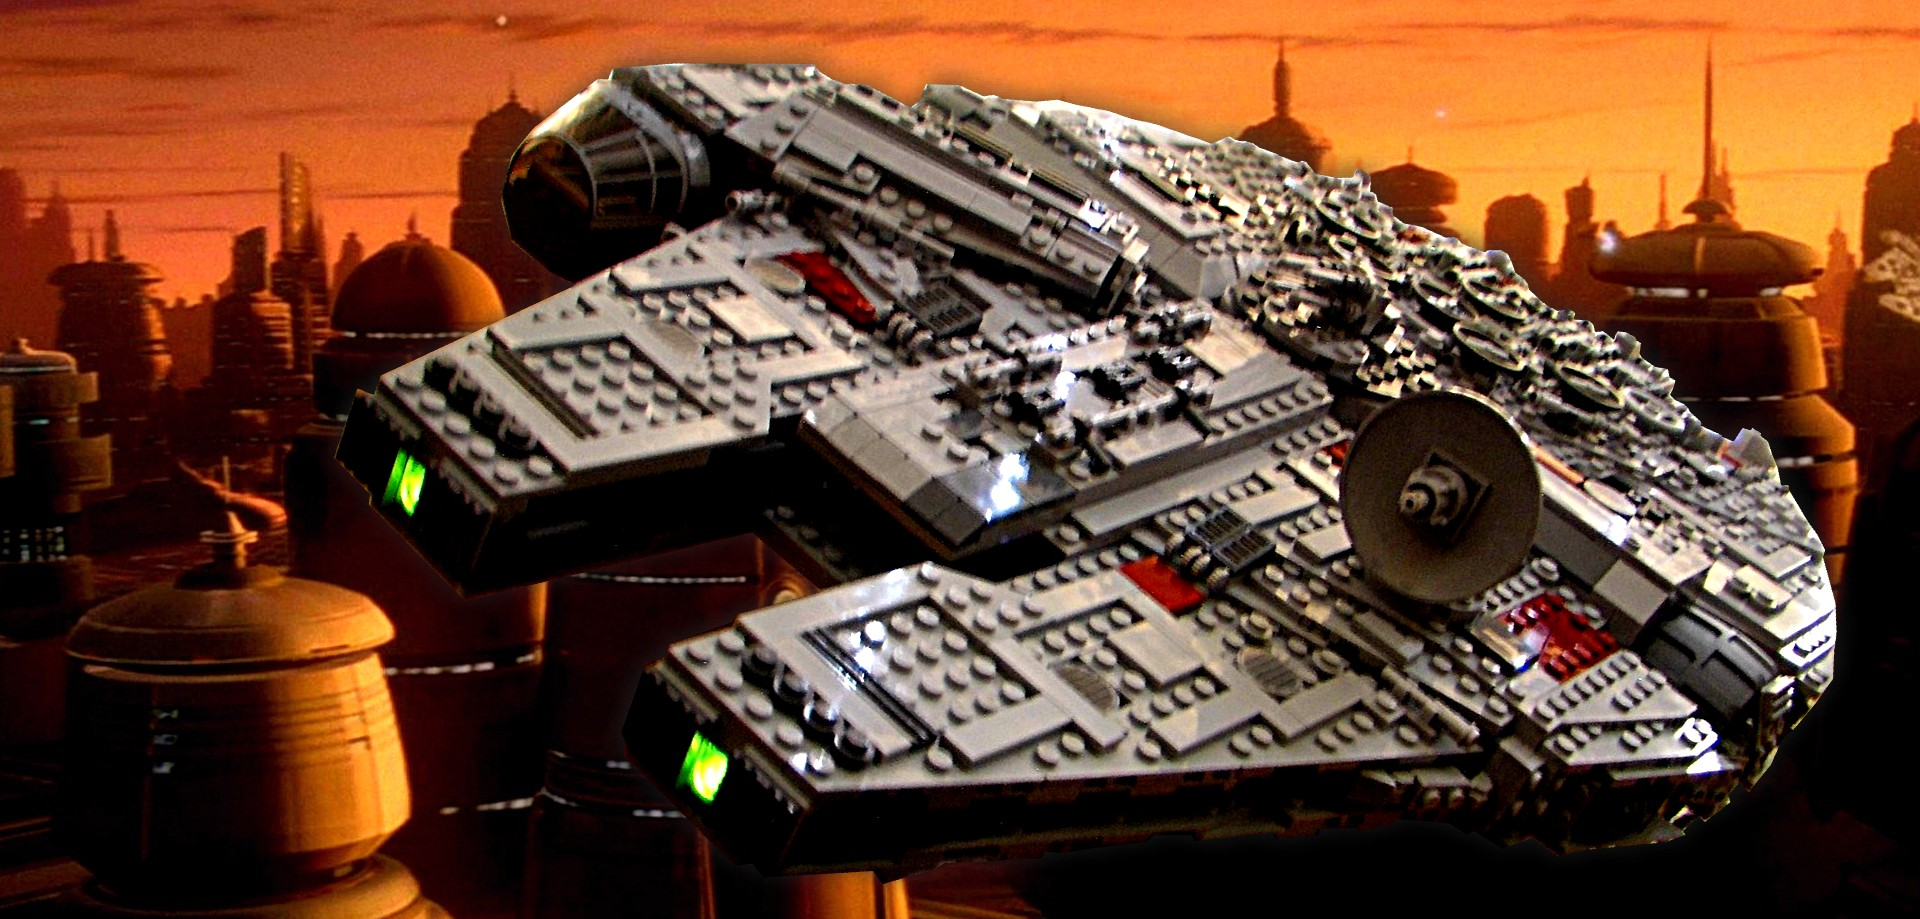 Millennium Falcon at Cloud City